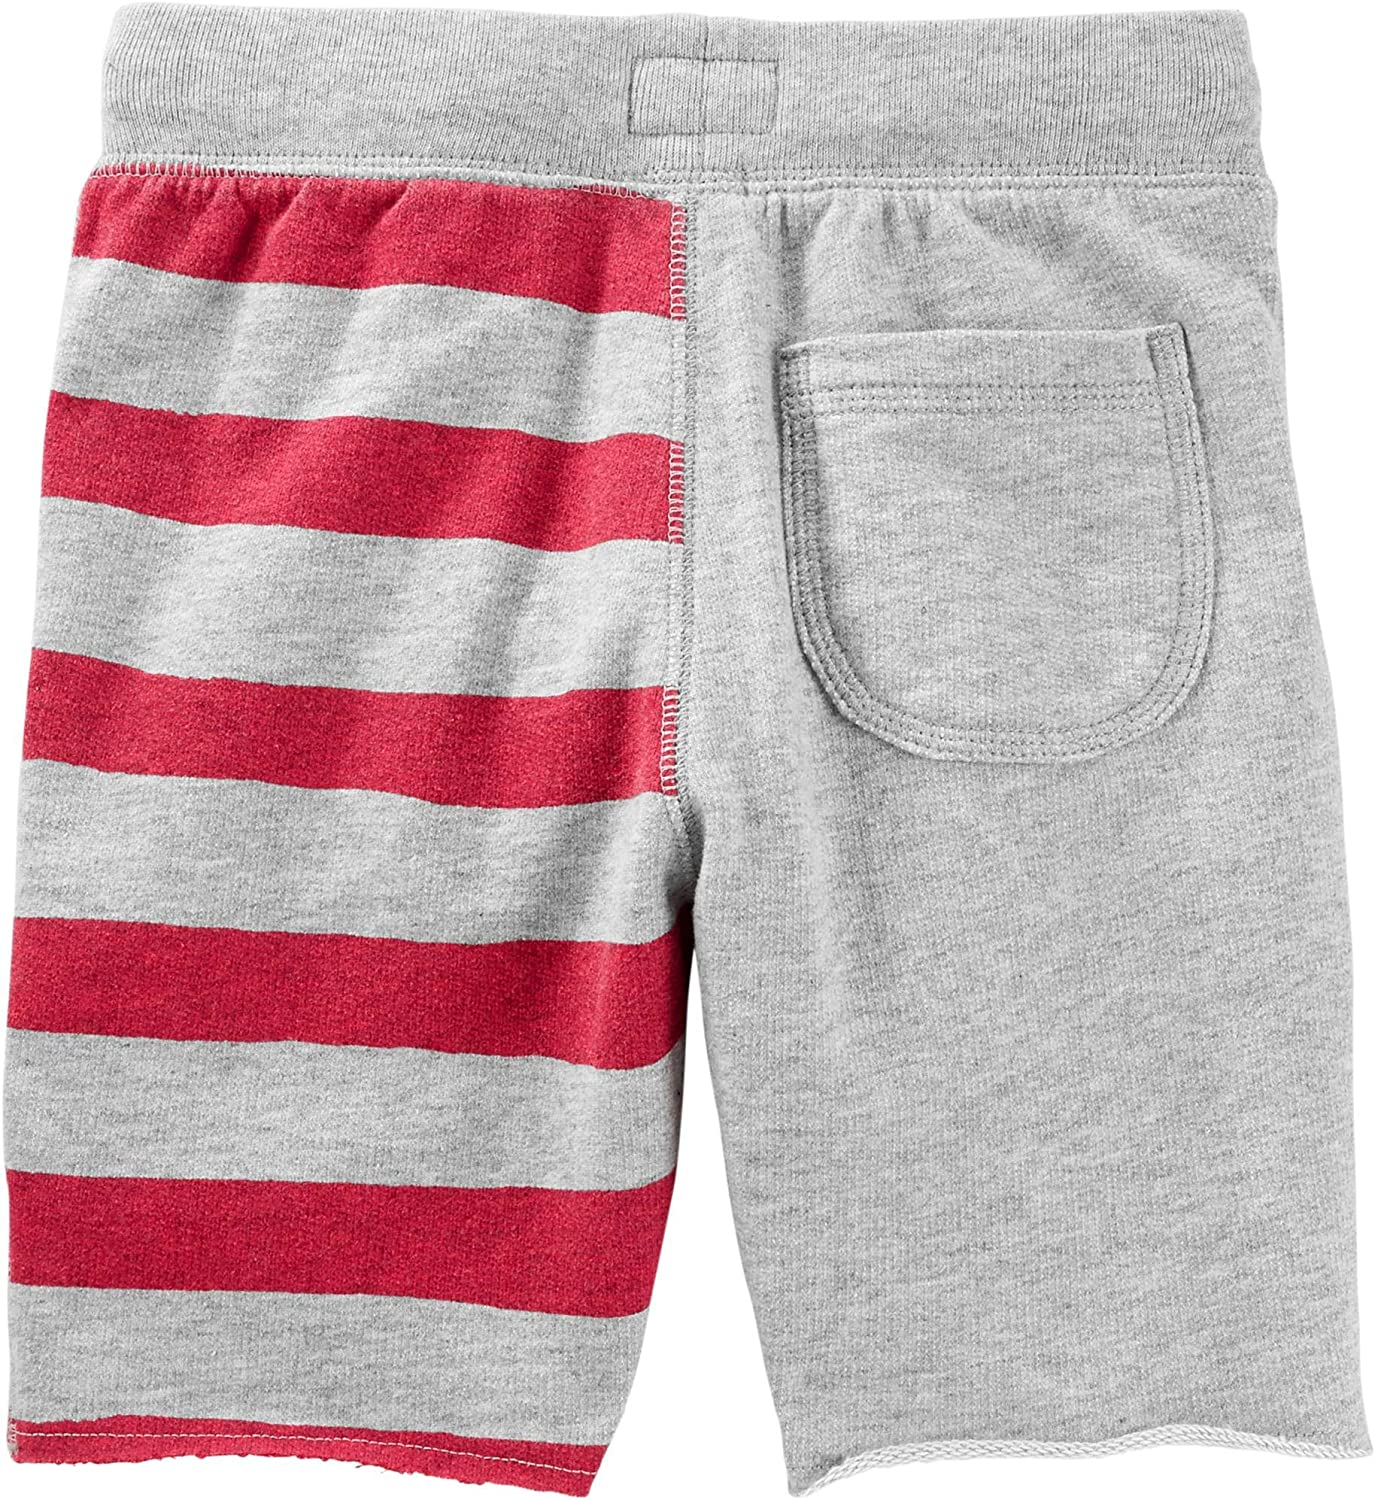 OshKosh BGosh Boys Kids Knit Shorts